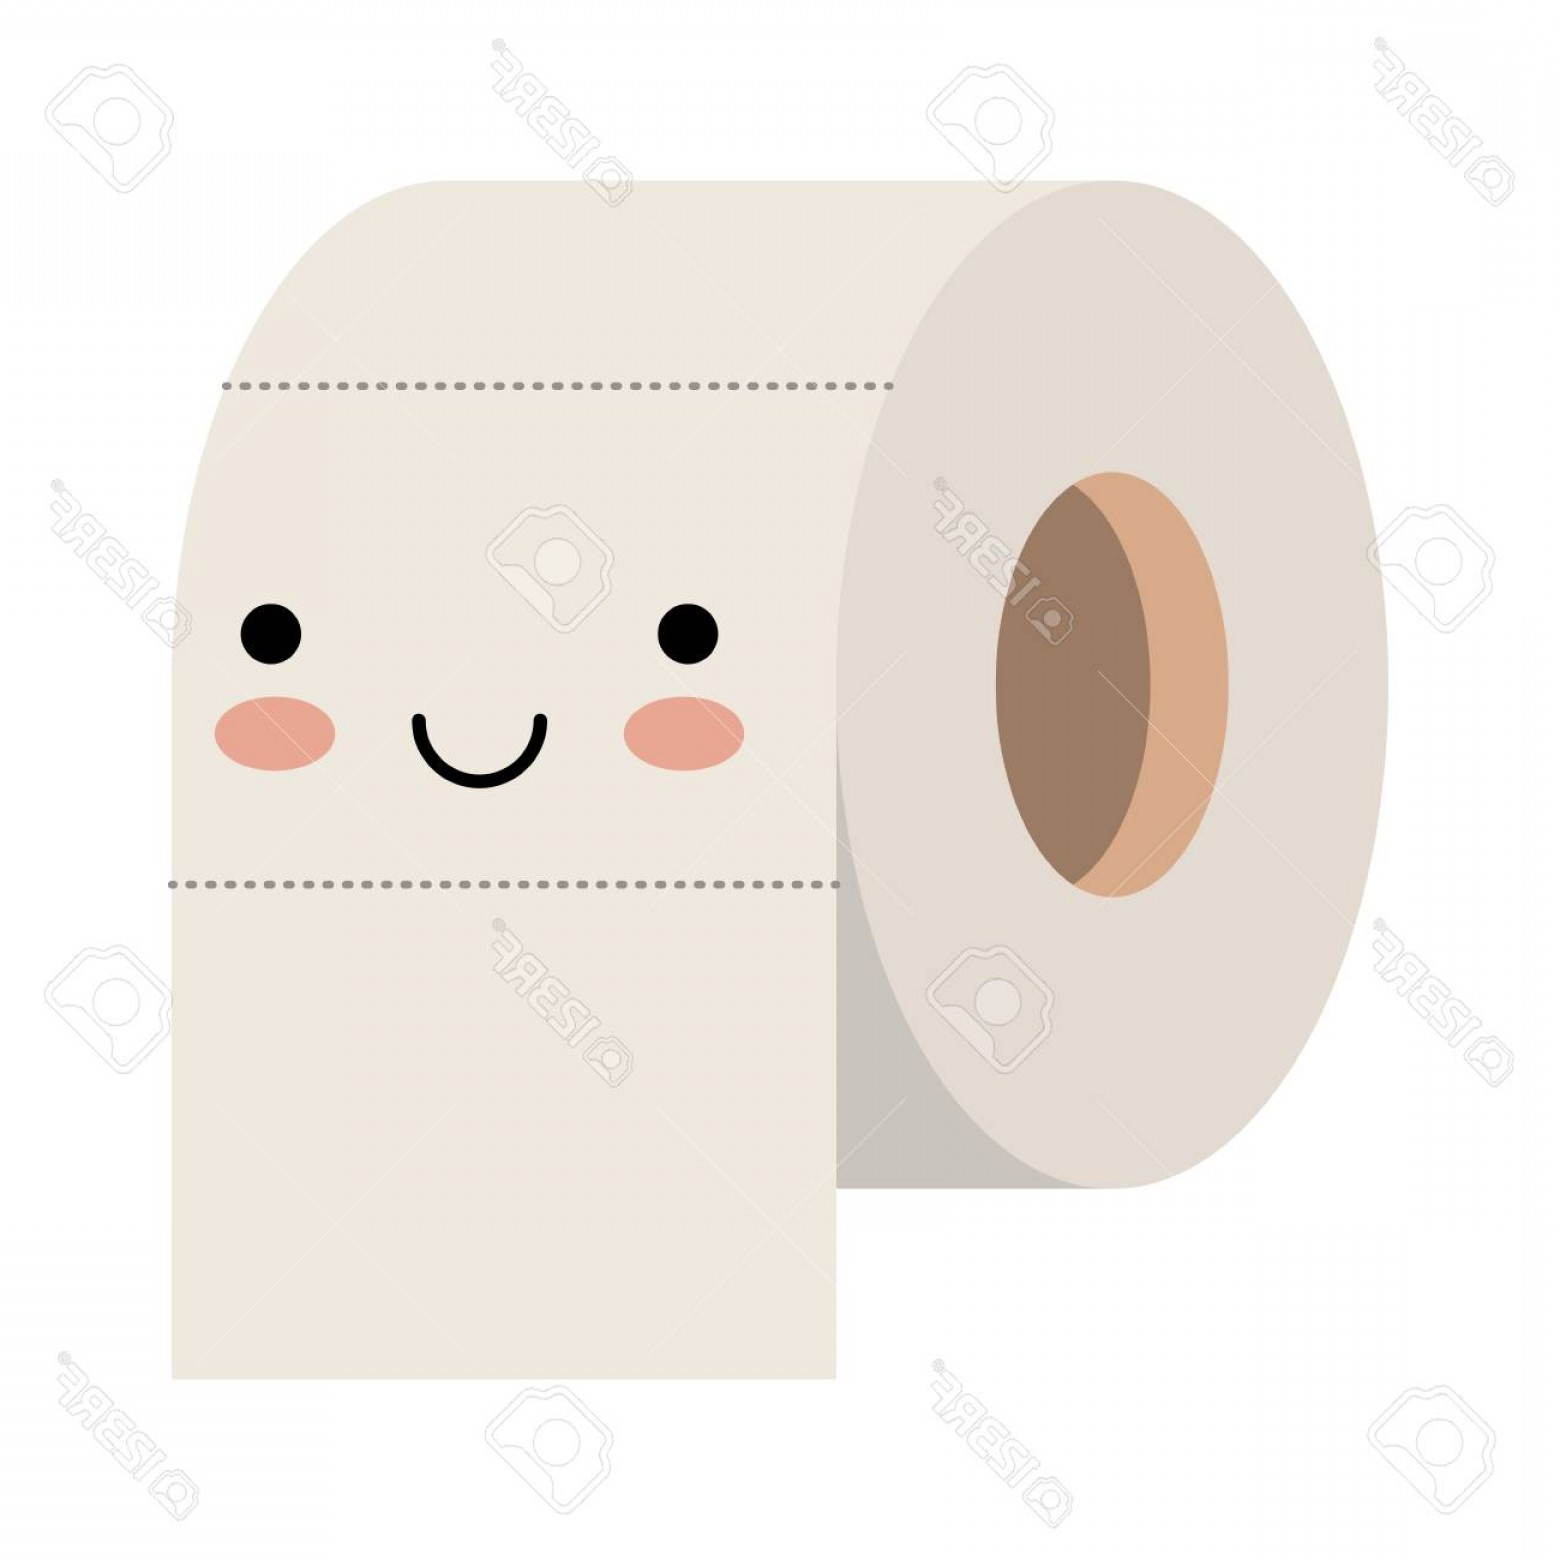 Toilet Paper Vector: Photostock Vector Toilet Paper Roll In Colorful Silhouette Vector Illustration